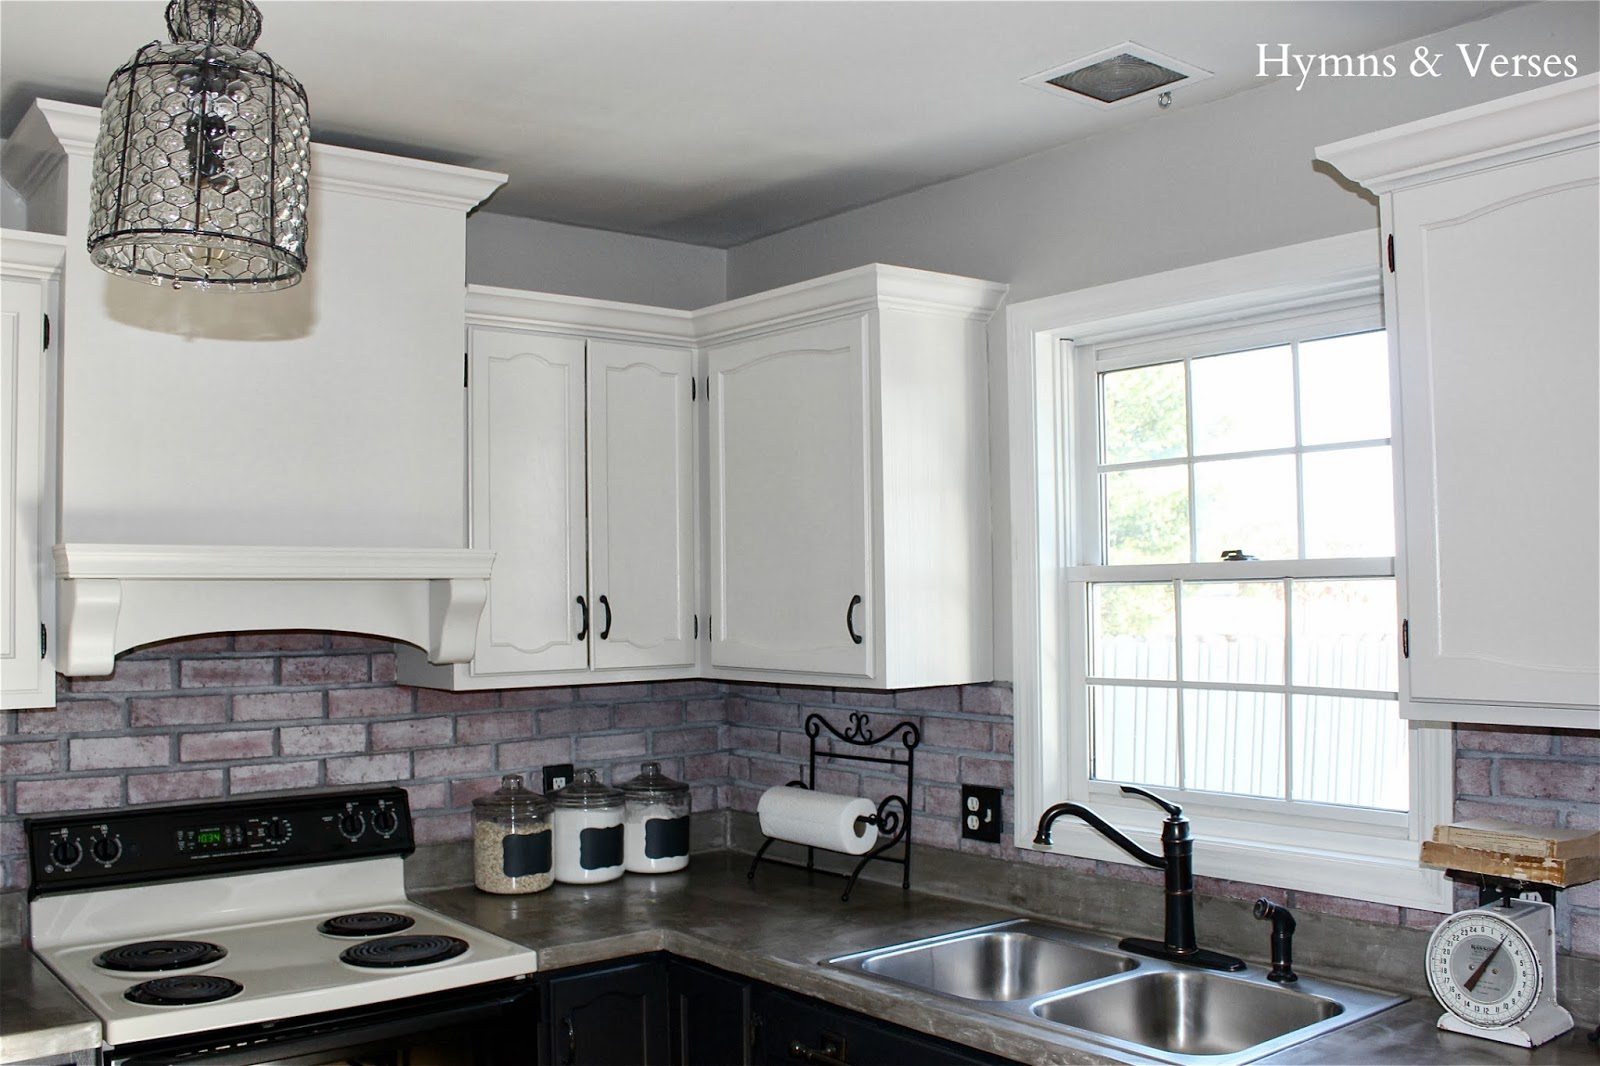 Black And Grey Kitchen Backsplash Our Diy Kitchen Makeover Hymns And Verses